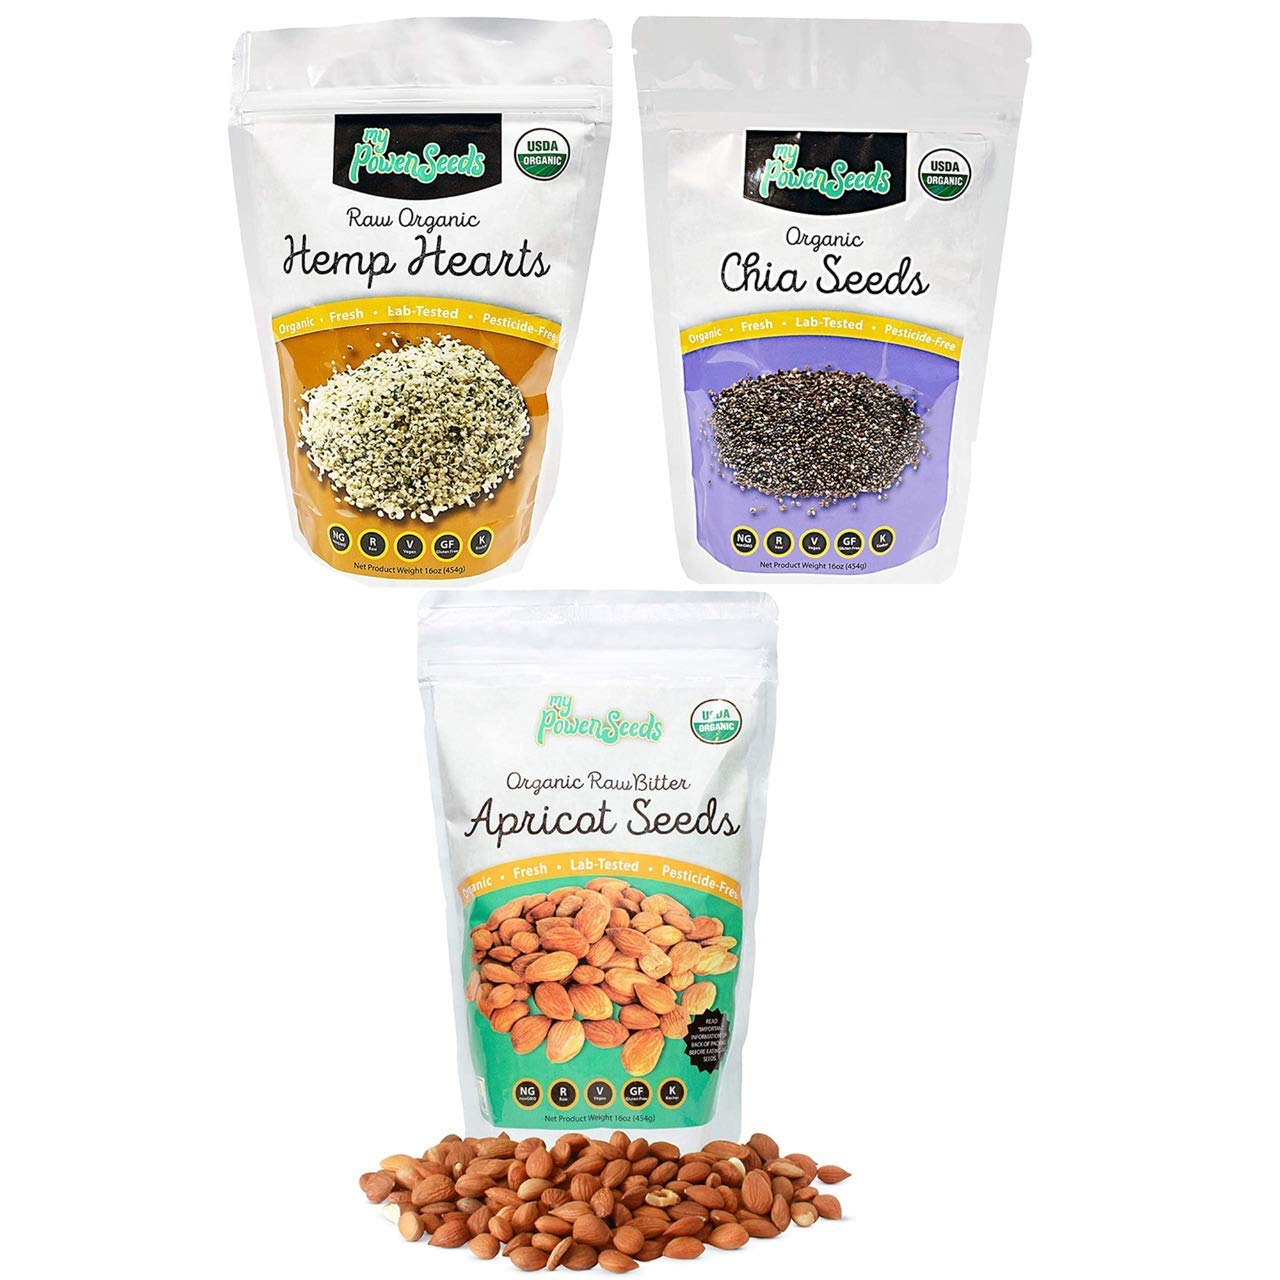 Certified Organic Super bundle by My Power Seeds Hemp Hearts, Chia Seeds, Apricot Seeds 100% Non GMO, Vegan